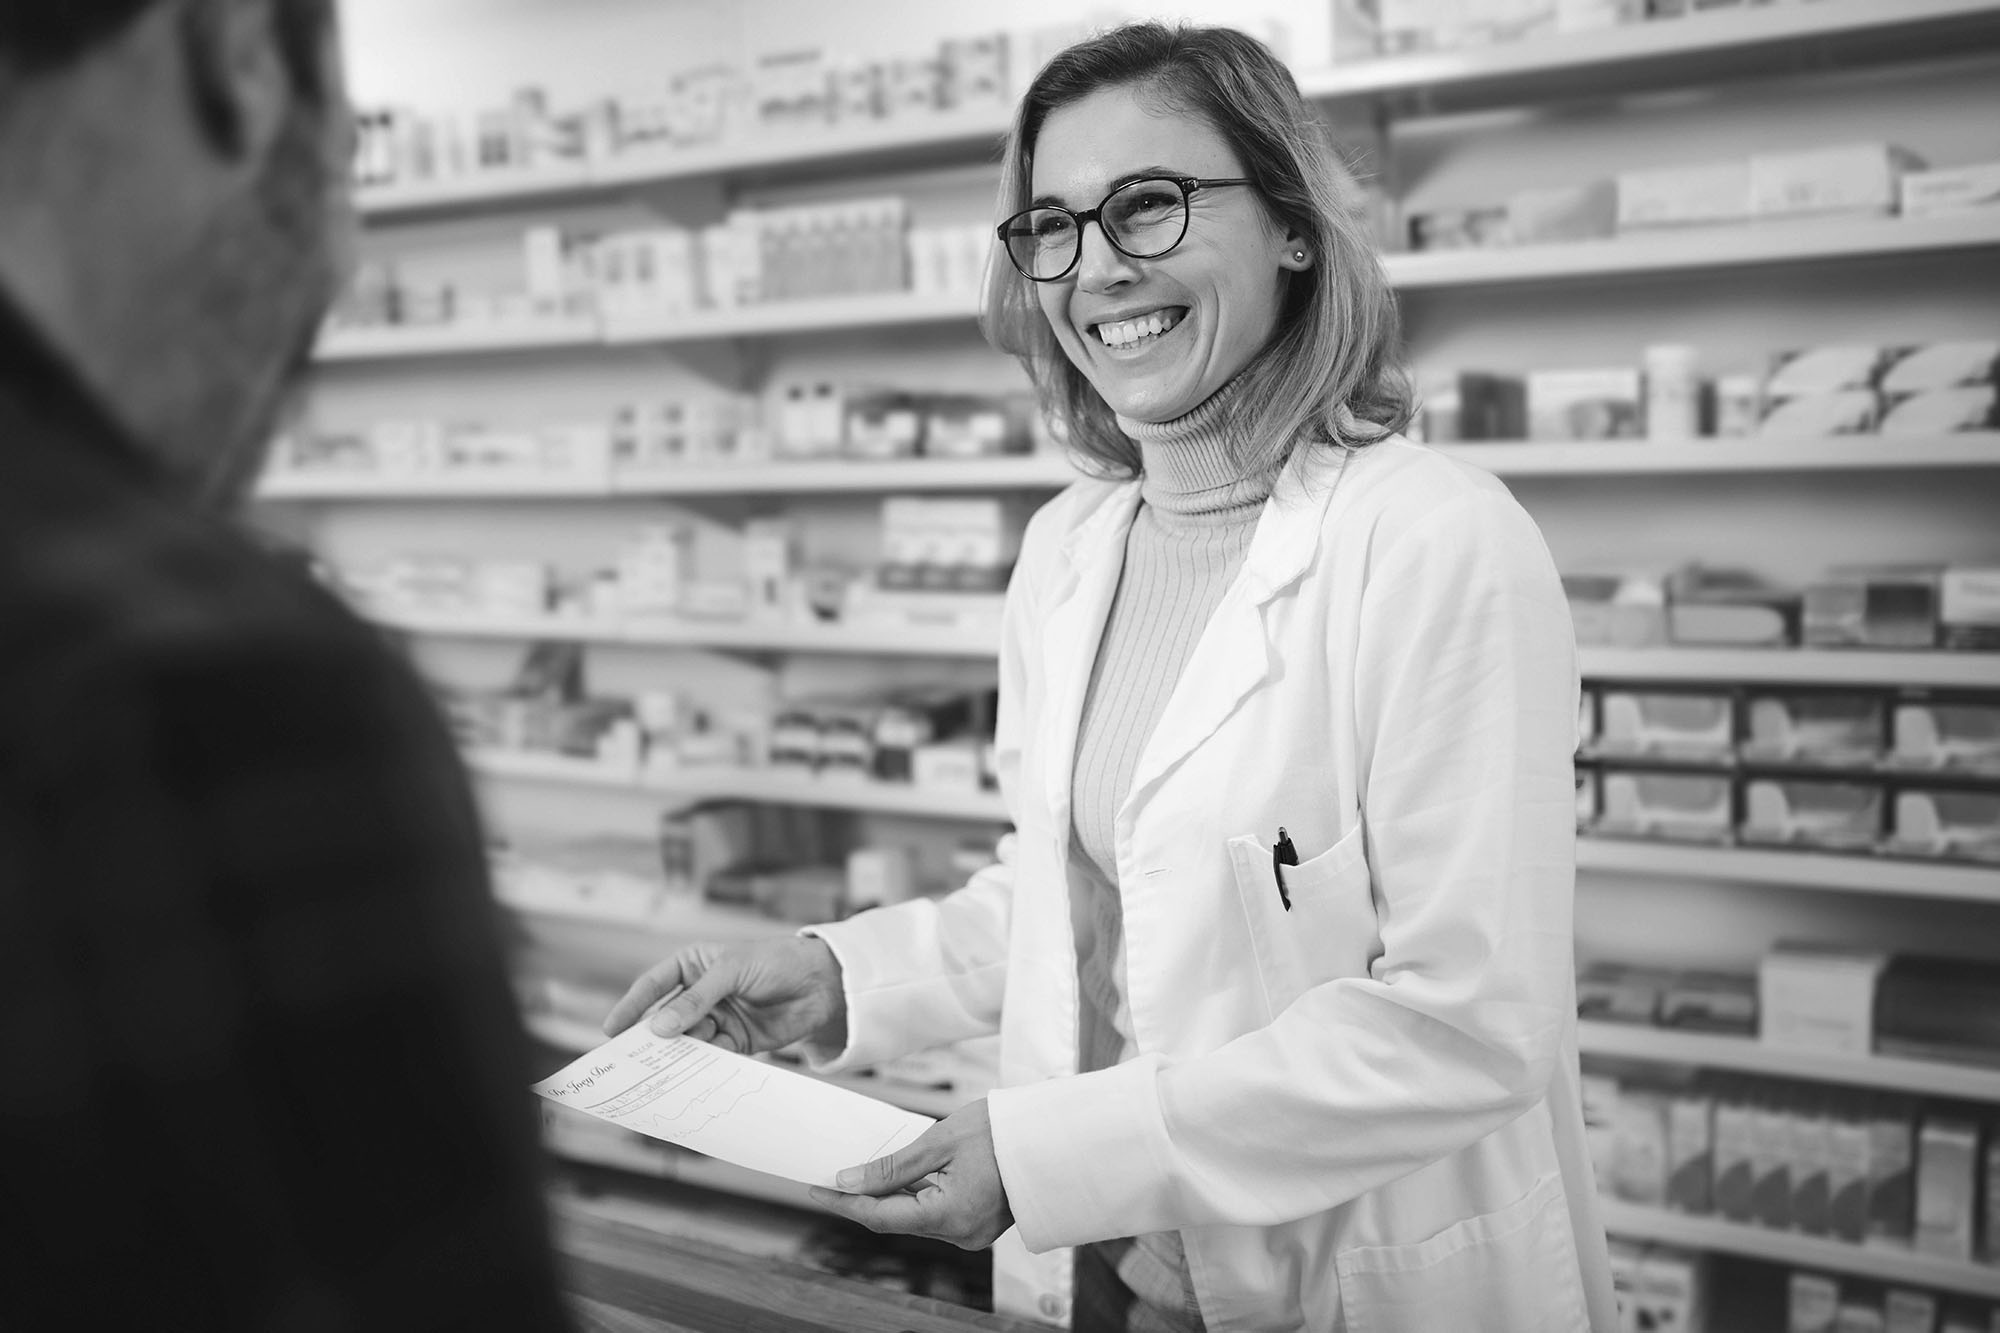 pharmacist gives prescription to customer